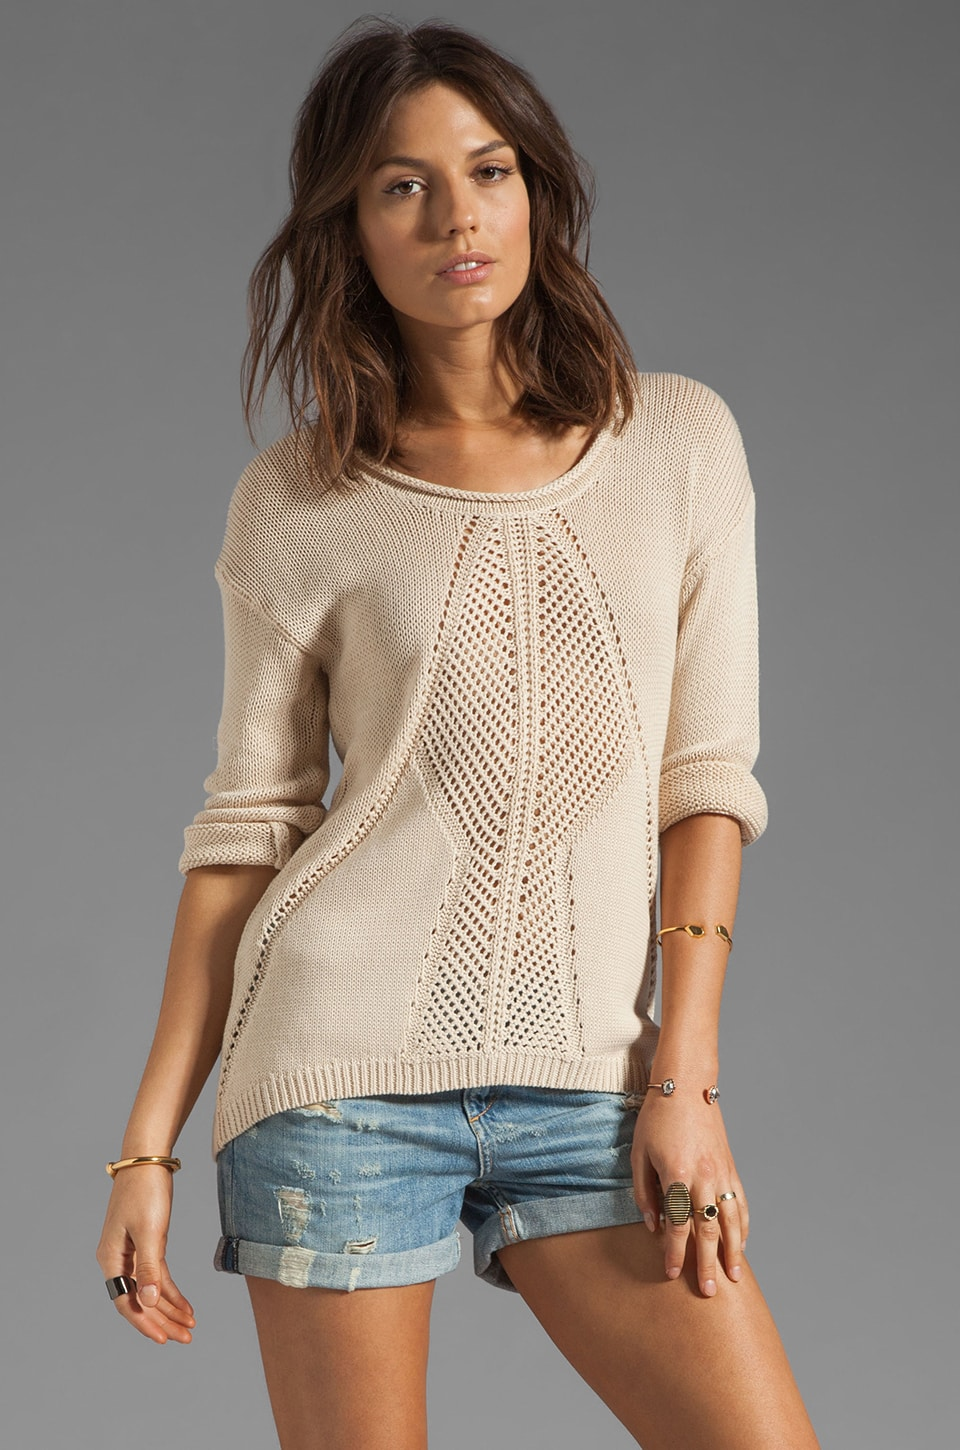 HEARTLOOM Malia Sweater in Ecru